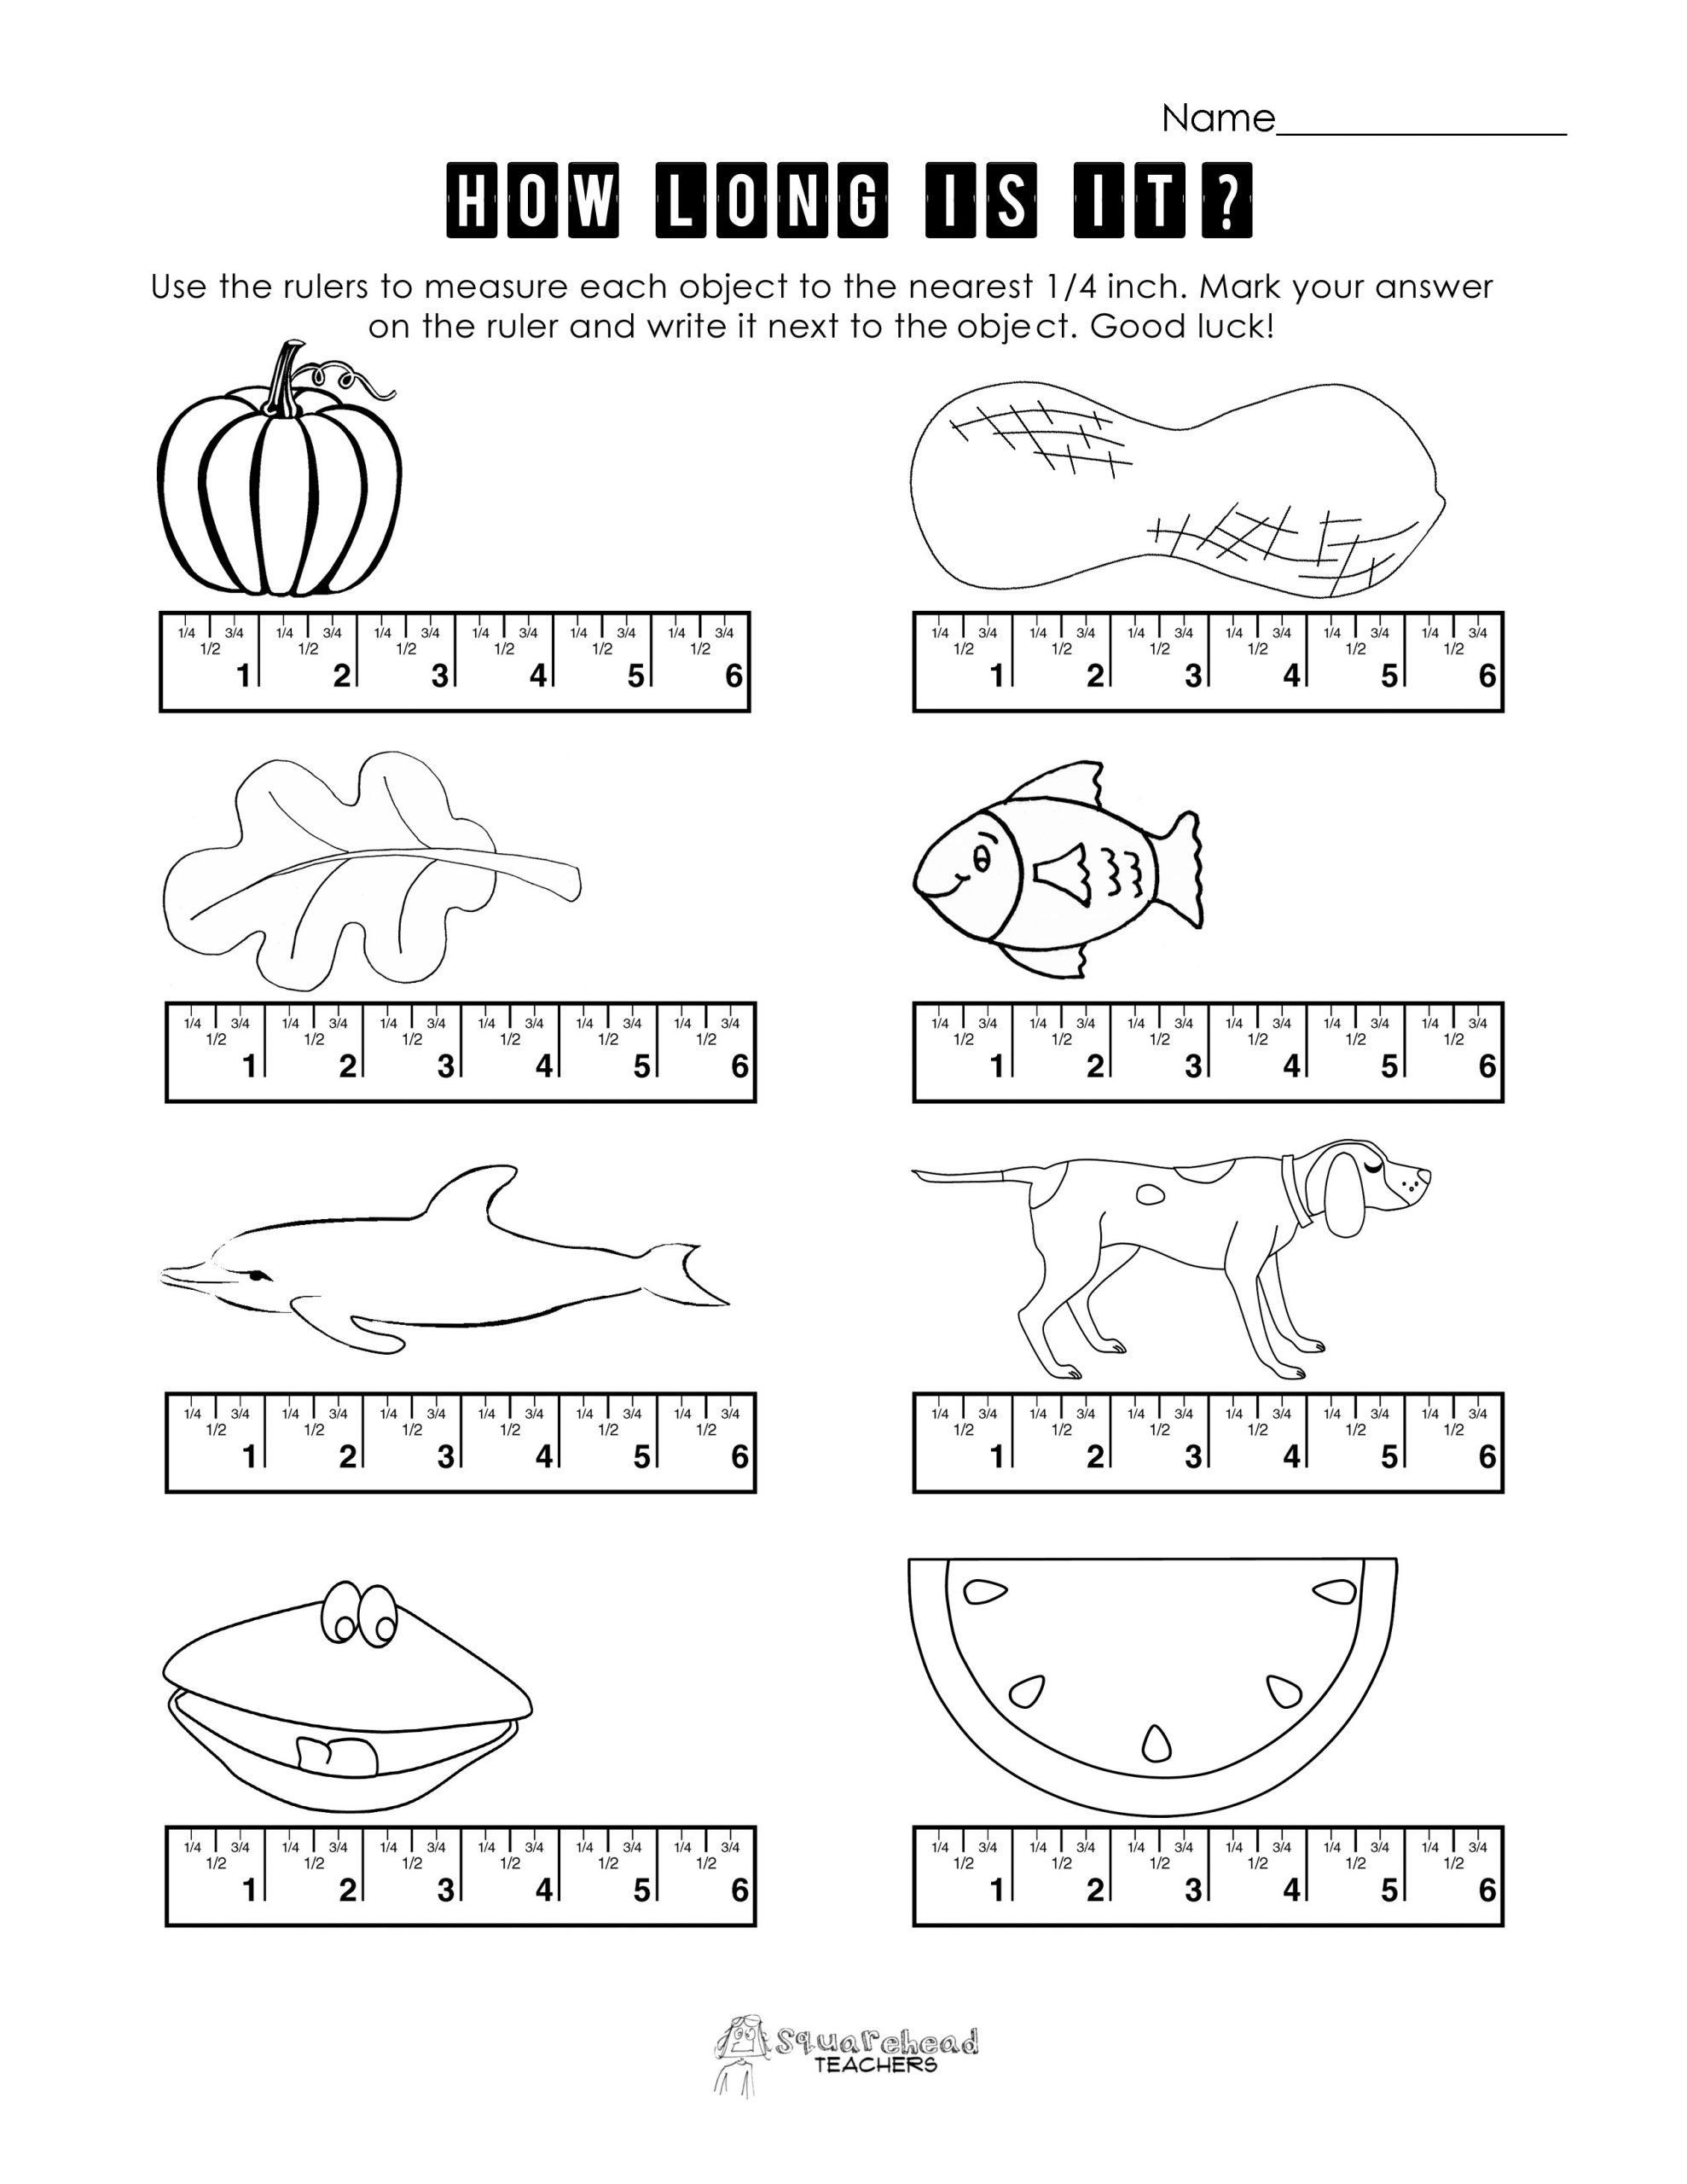 2nd Grade Measurement Worksheets Free Pin On 1st Grade Worksheets & Free Printables